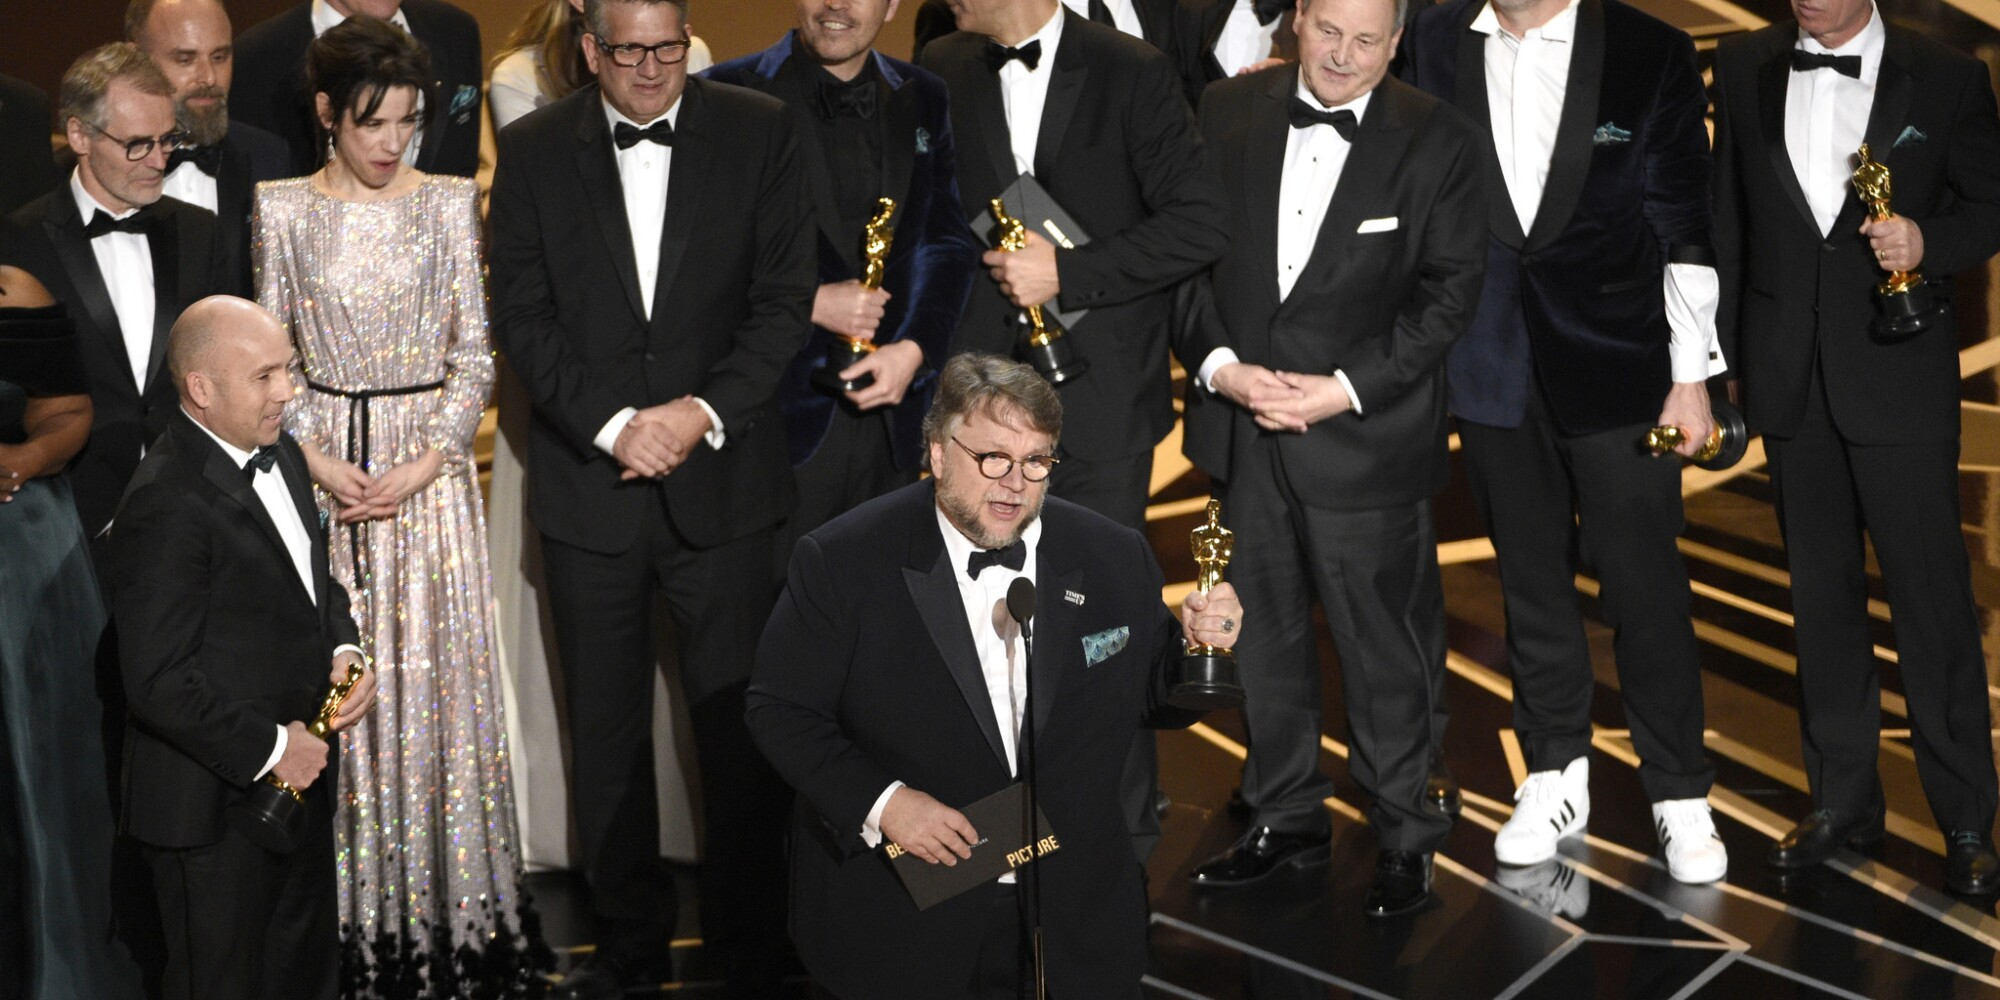 Oscars 2018: Watch the 5 must-see moments and catch up on all the behind-the-scenes drama